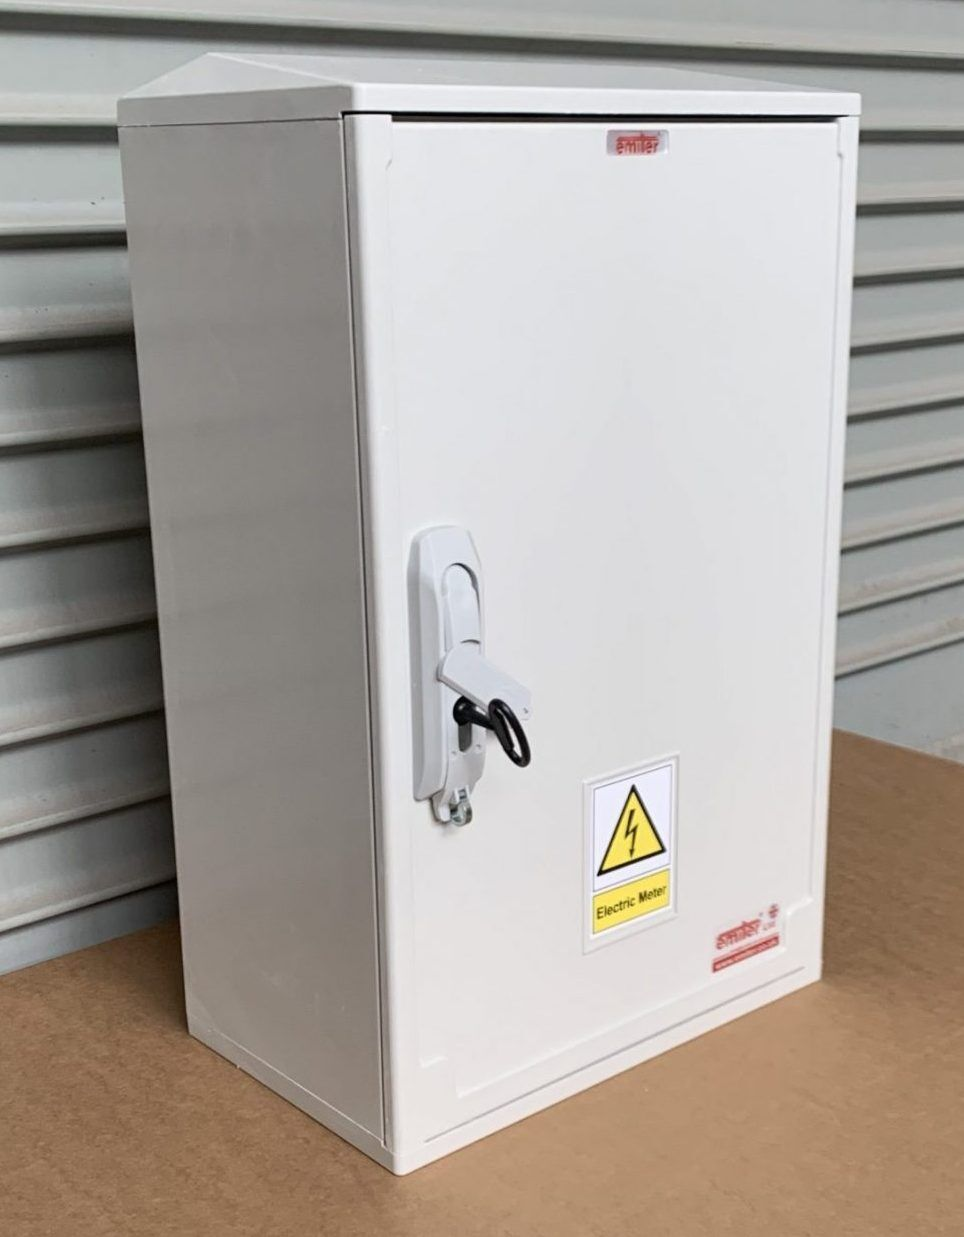 Surface mounted  Electric Meter Box W400xH600xD245 made of thick GRP, & incorporating very strong hinges, locking mechanism & removable door.